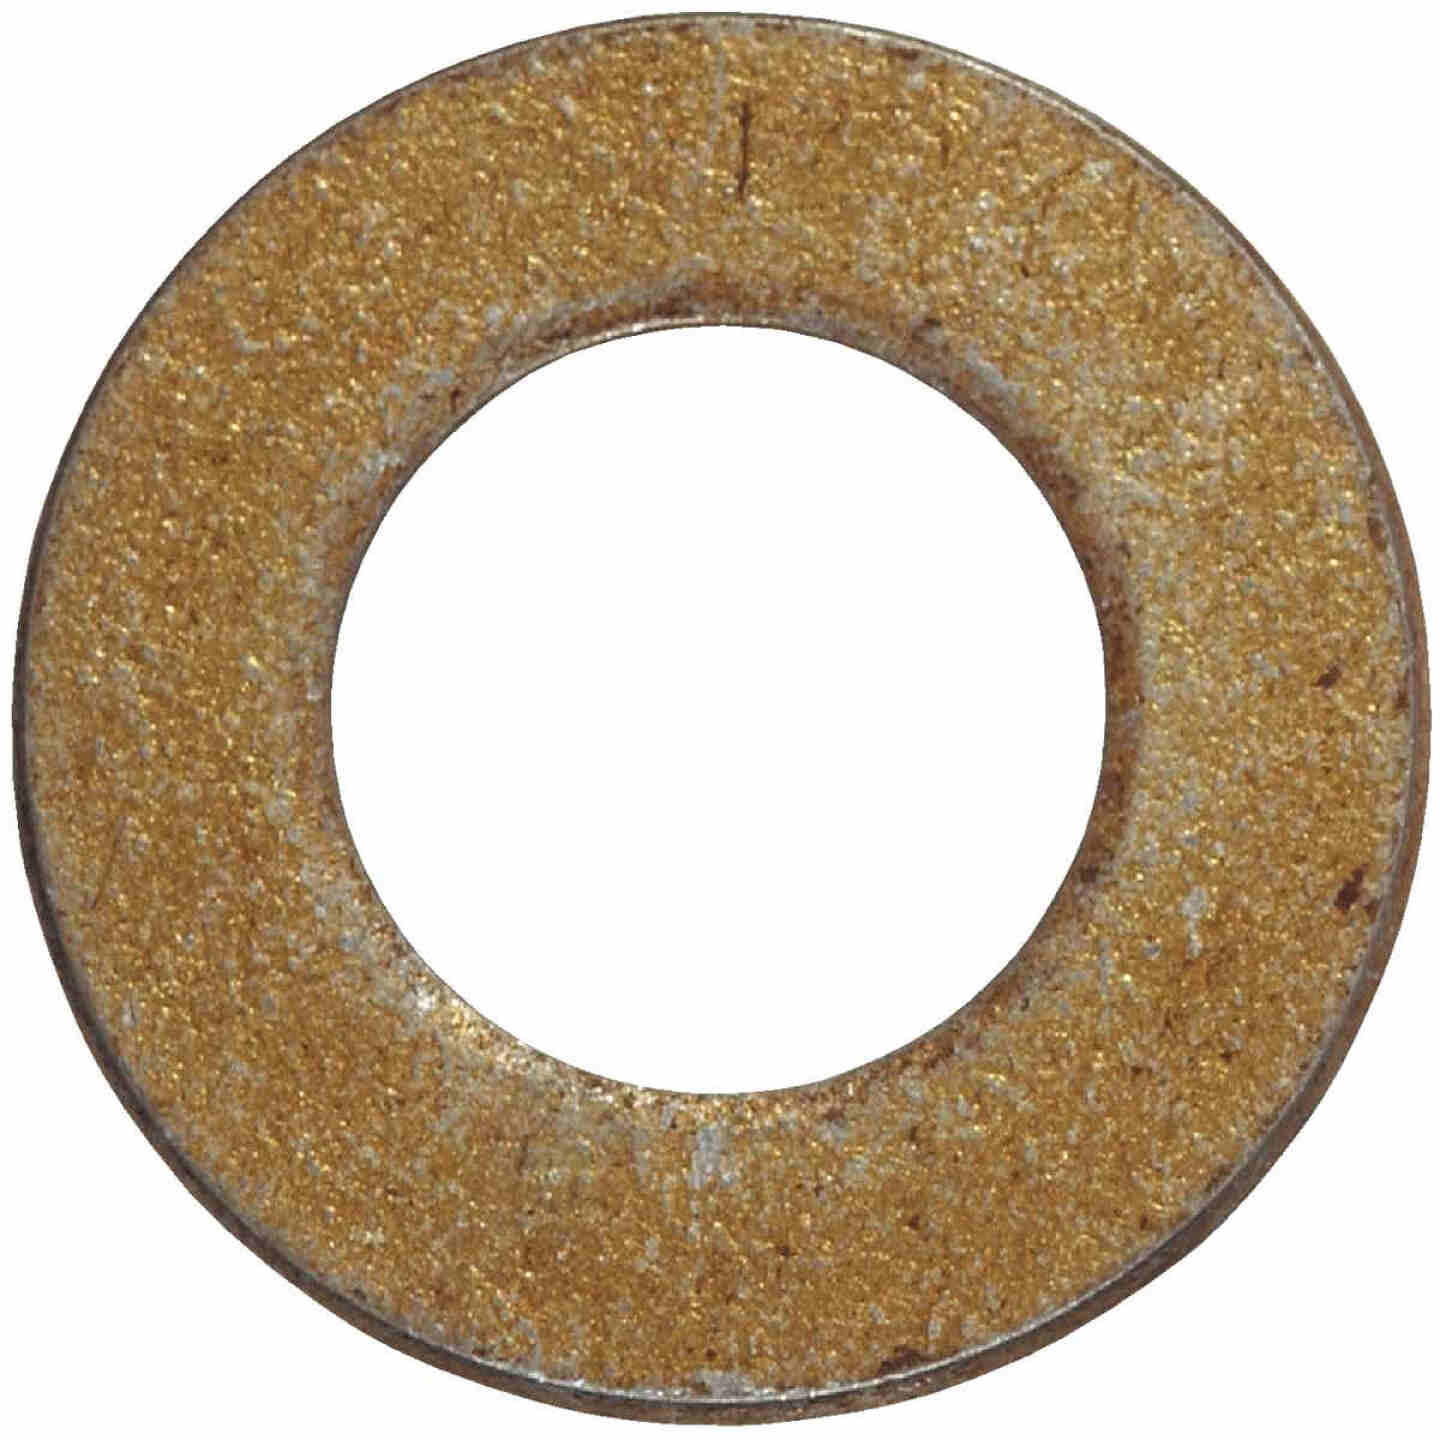 Hillman 7/16 In. SAE Hardened Steel Yellow Dichromate Flat Washer (50 Ct.) Image 1